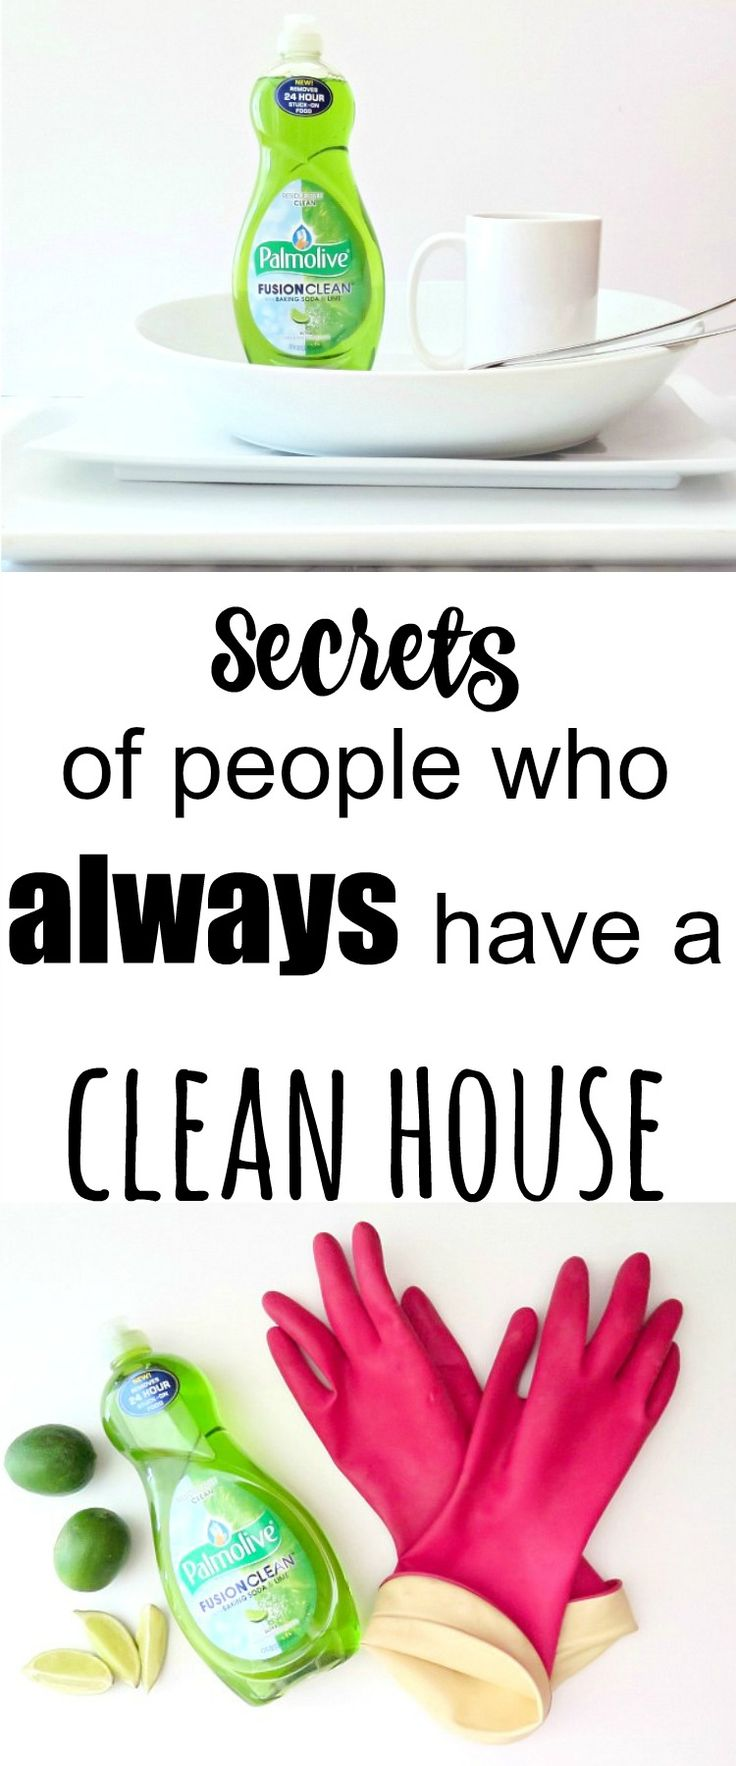 10 Secrets of People Who Always Have a Clean Home